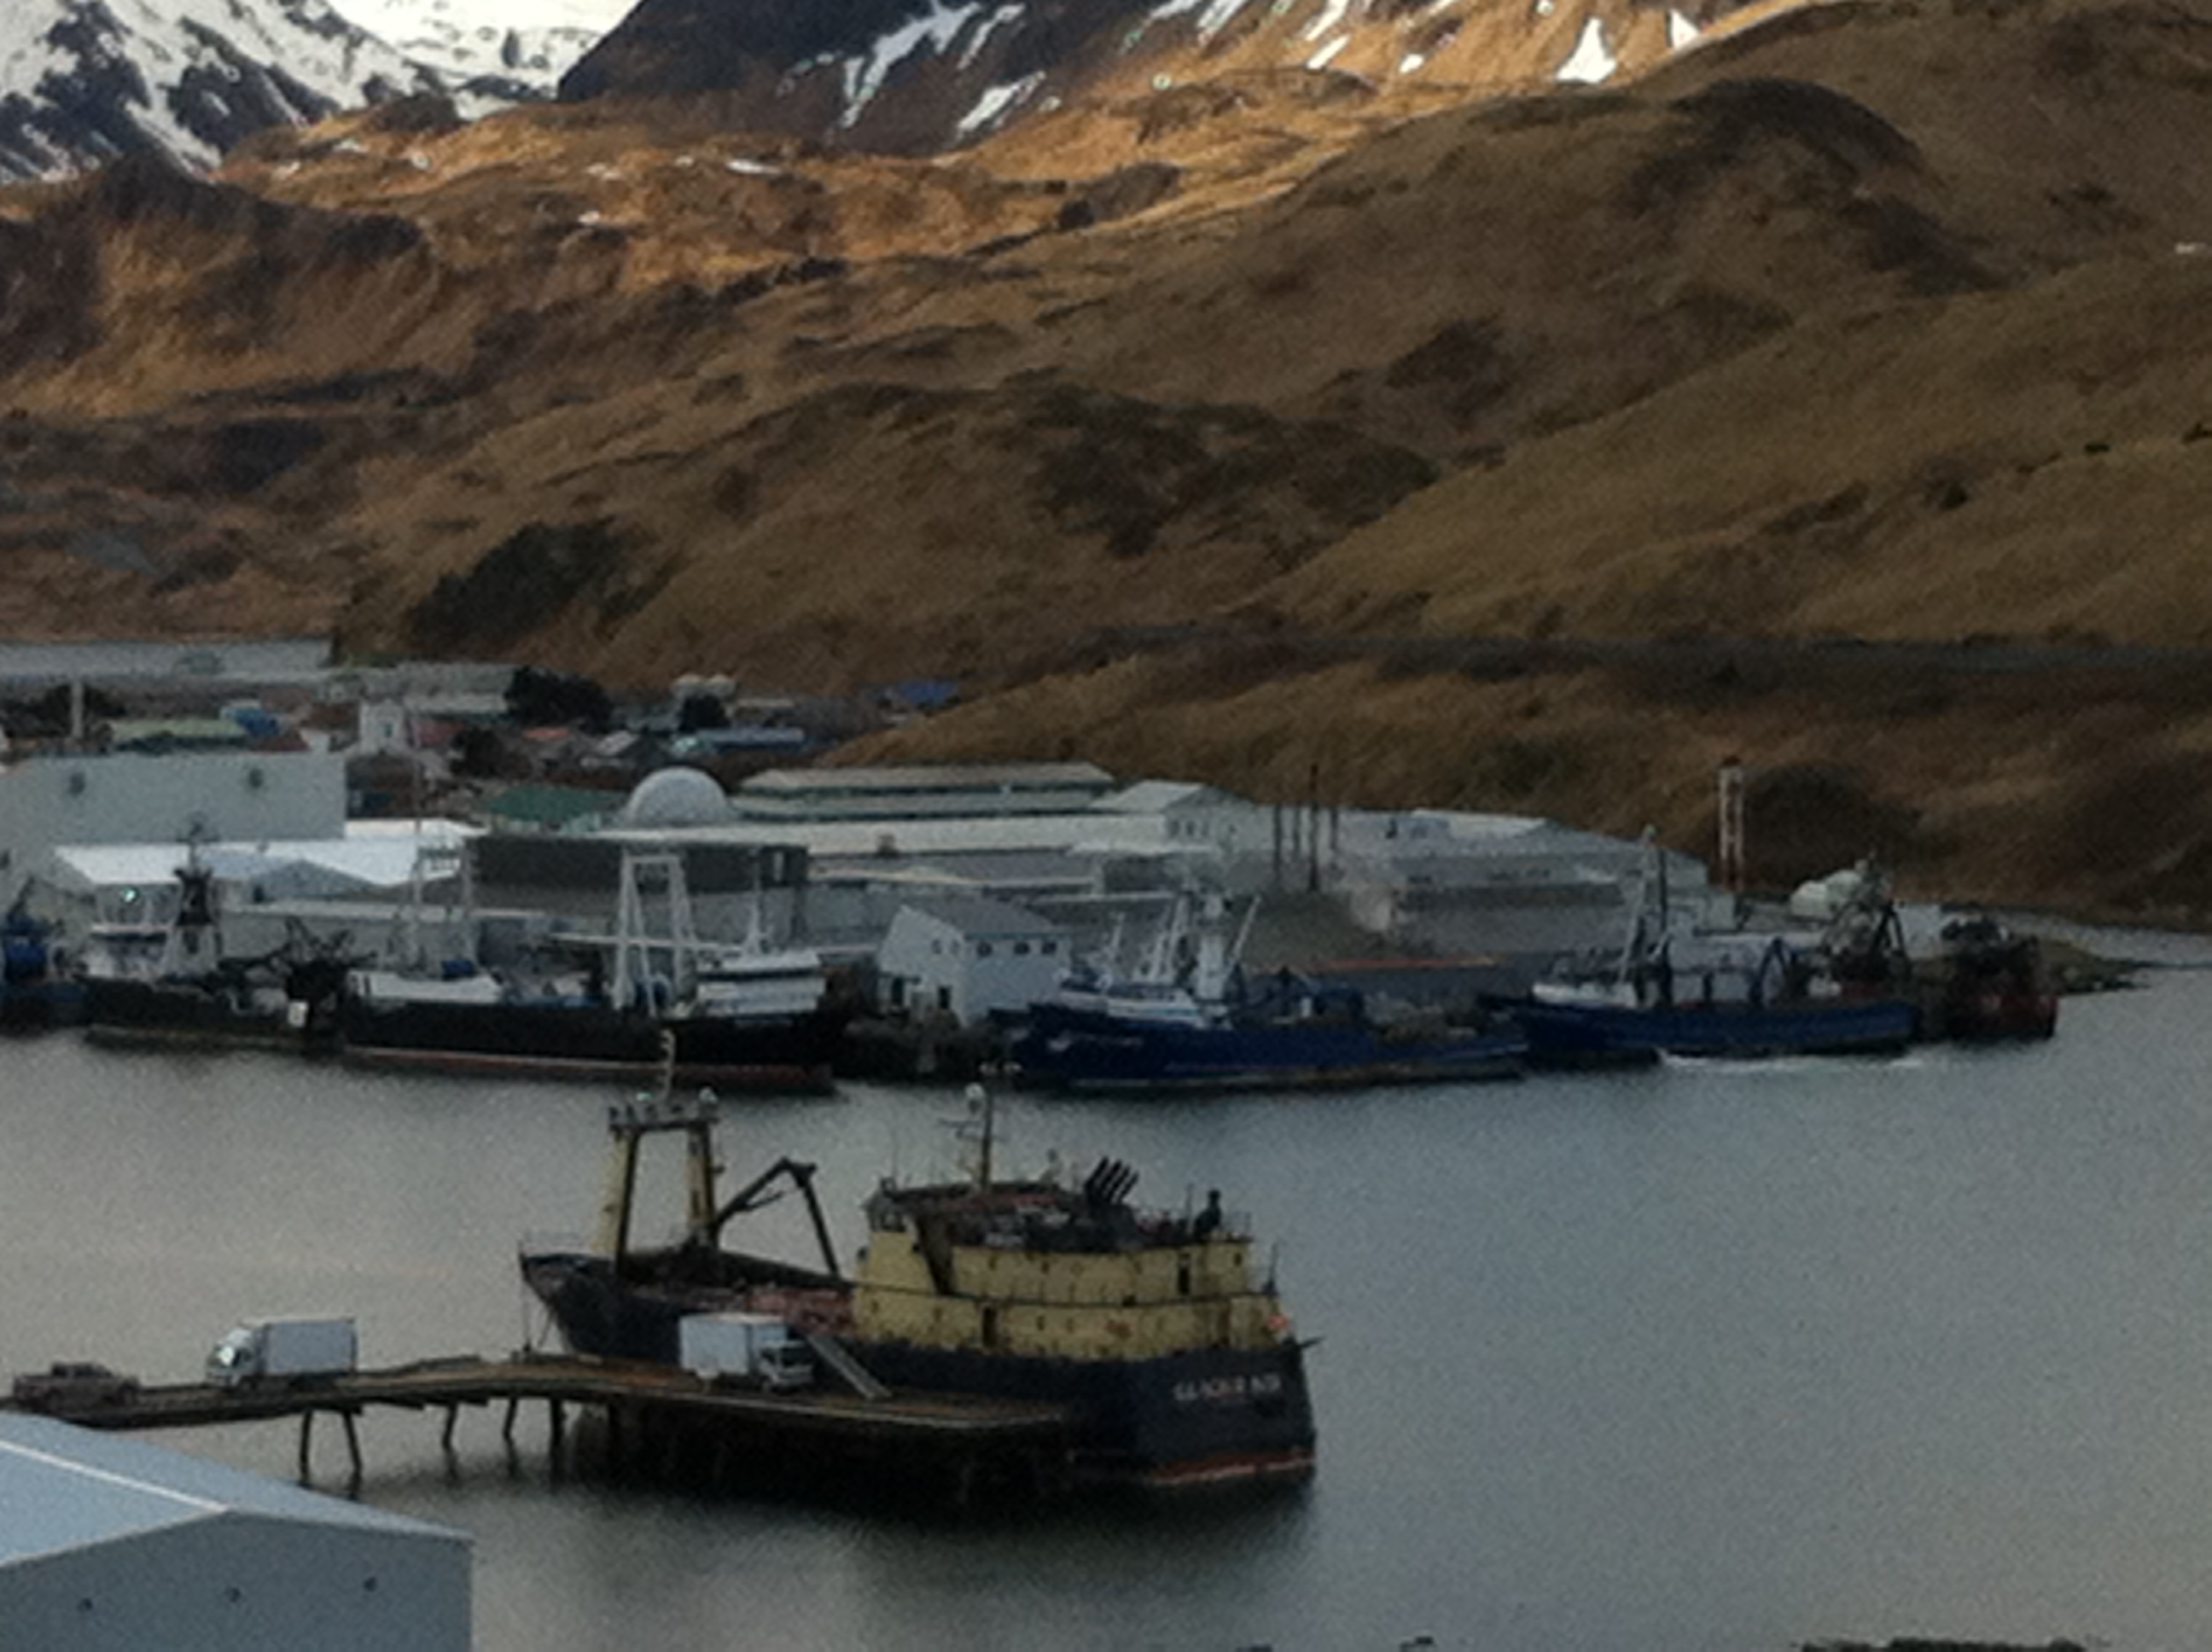 Grand aleutian hotel in dutch harbor - Dutch Harbor